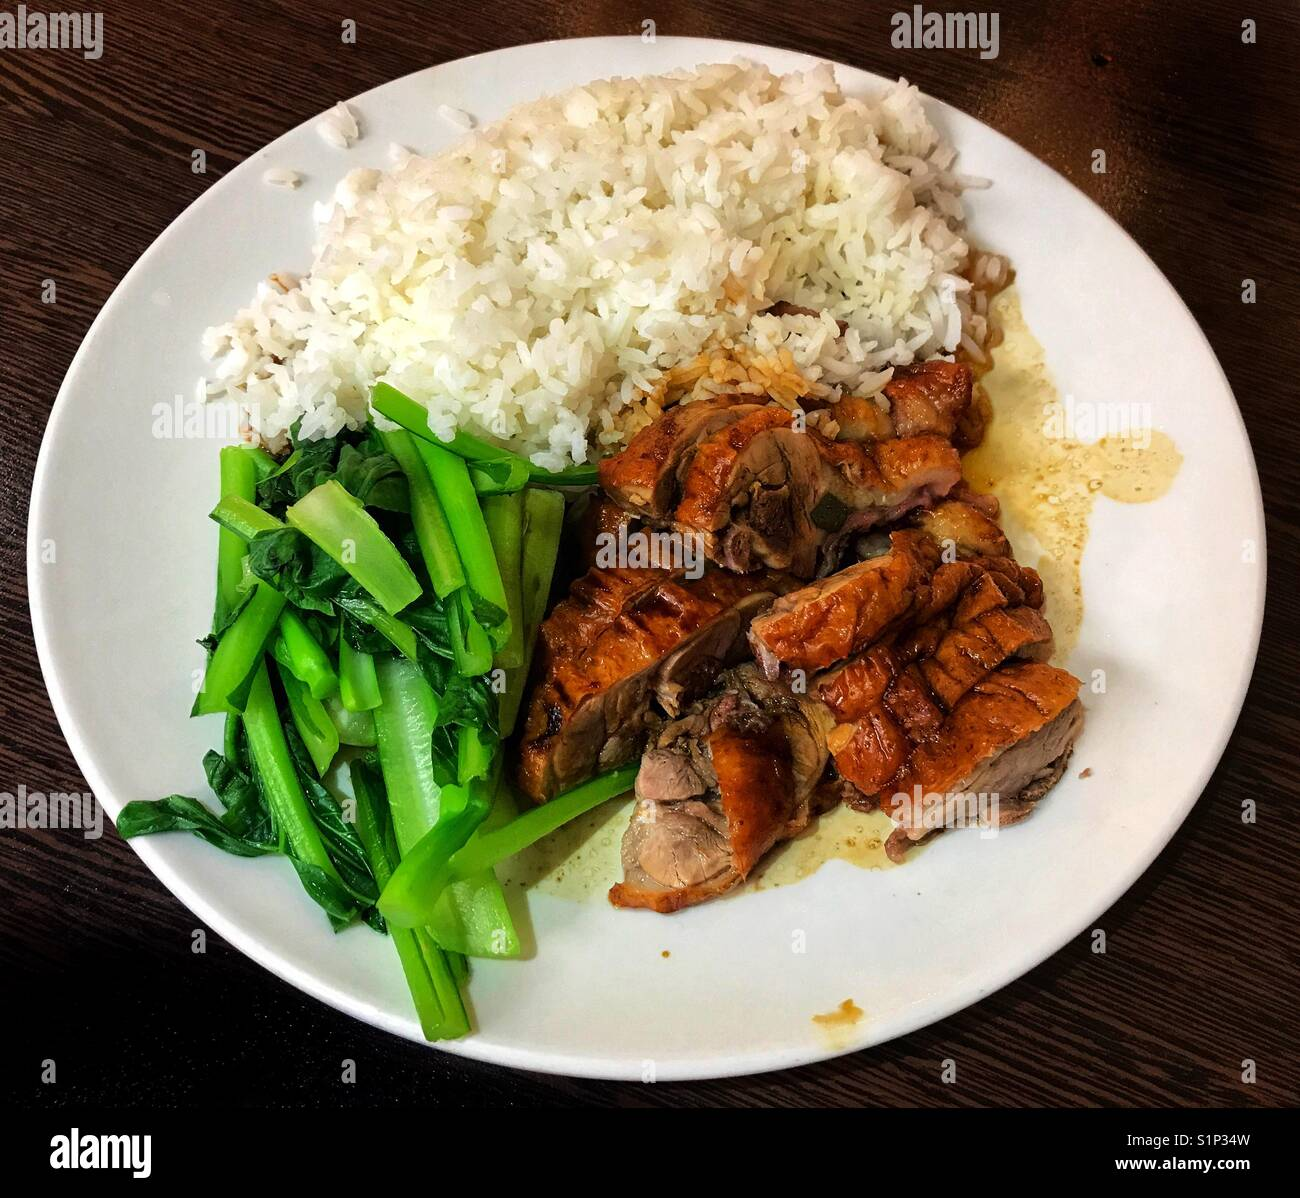 Cantonese roast duck with rice and vegetables - Stock Image